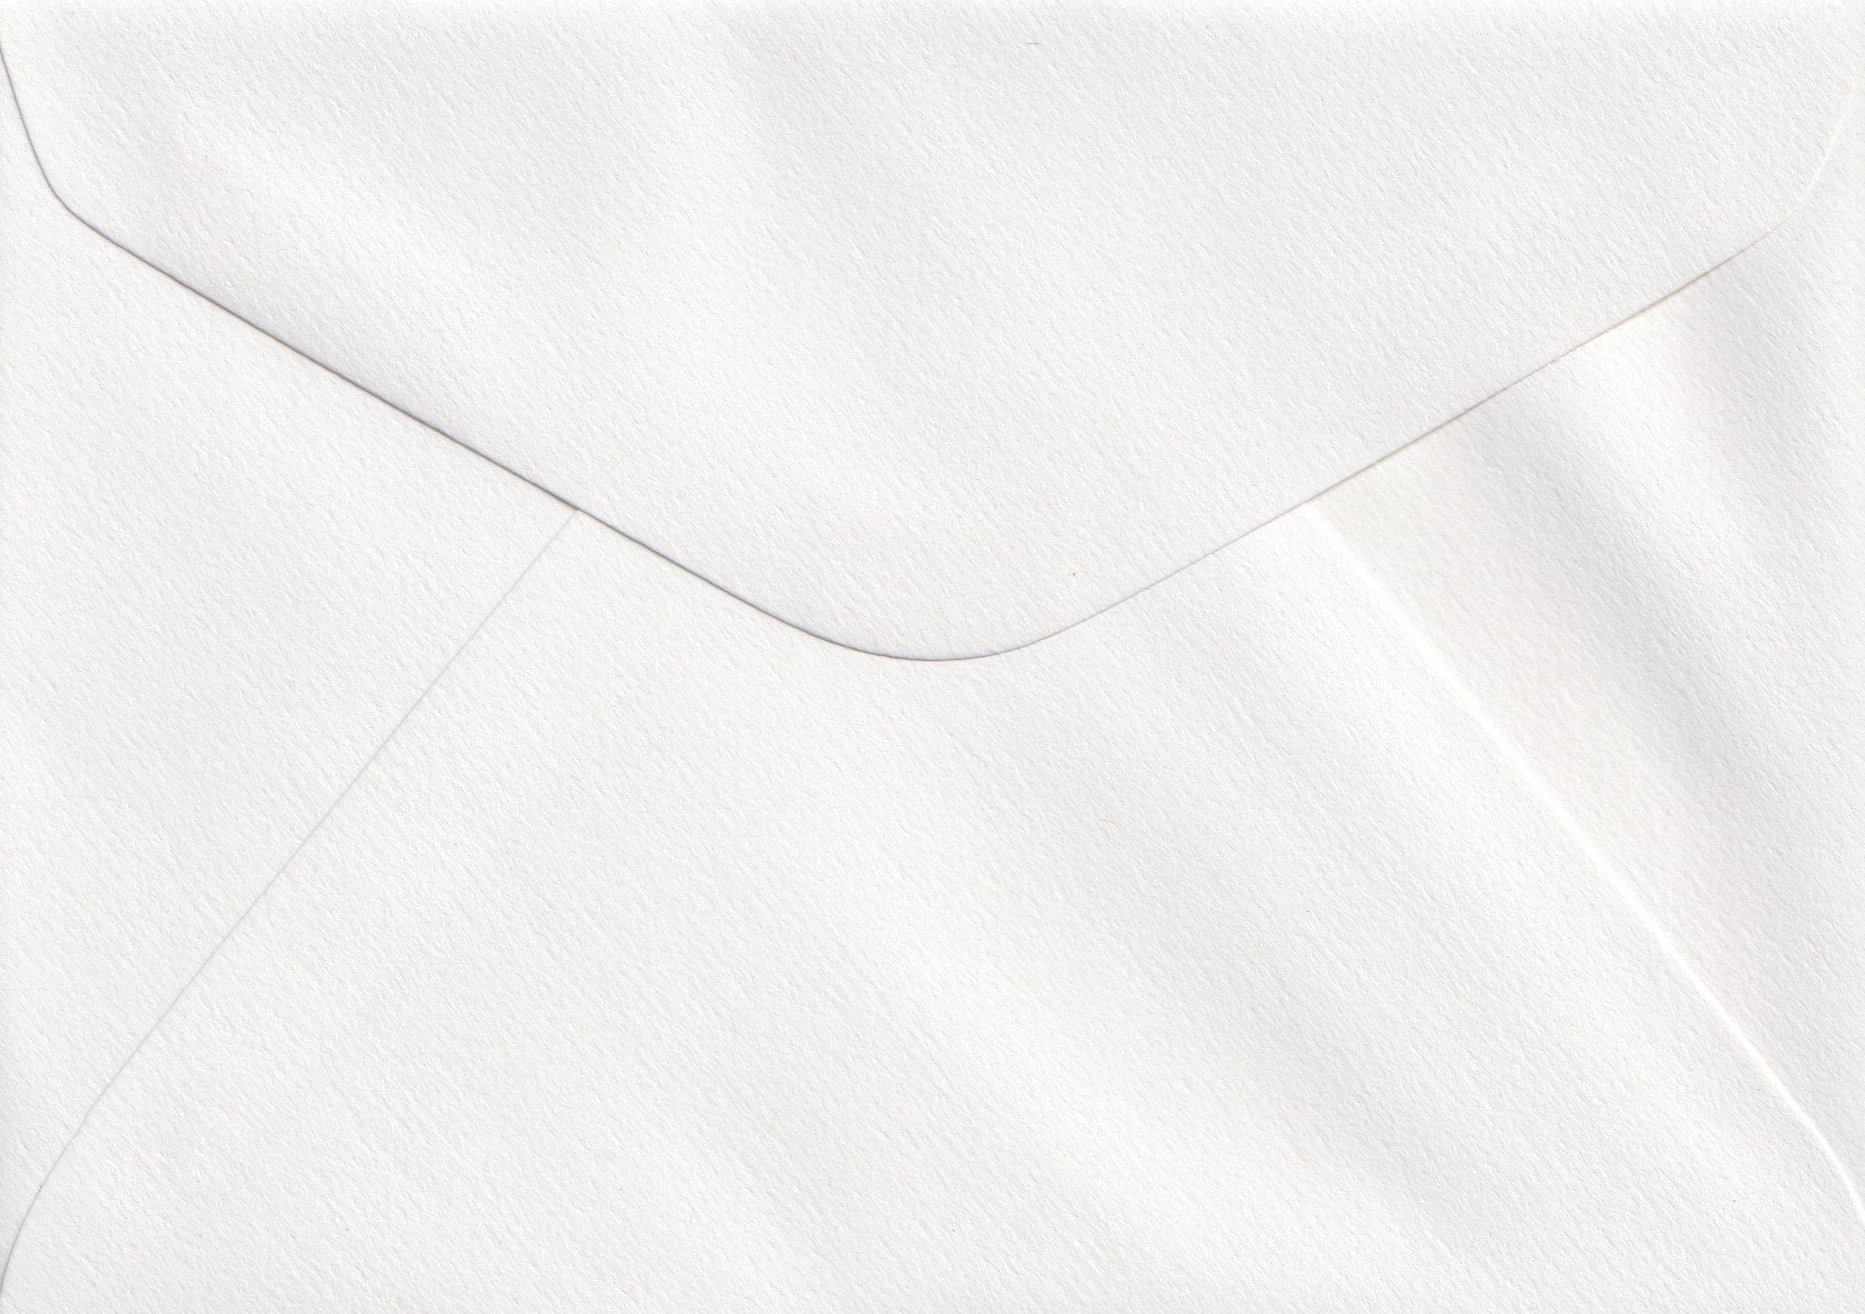 Oxford White C6 envelope